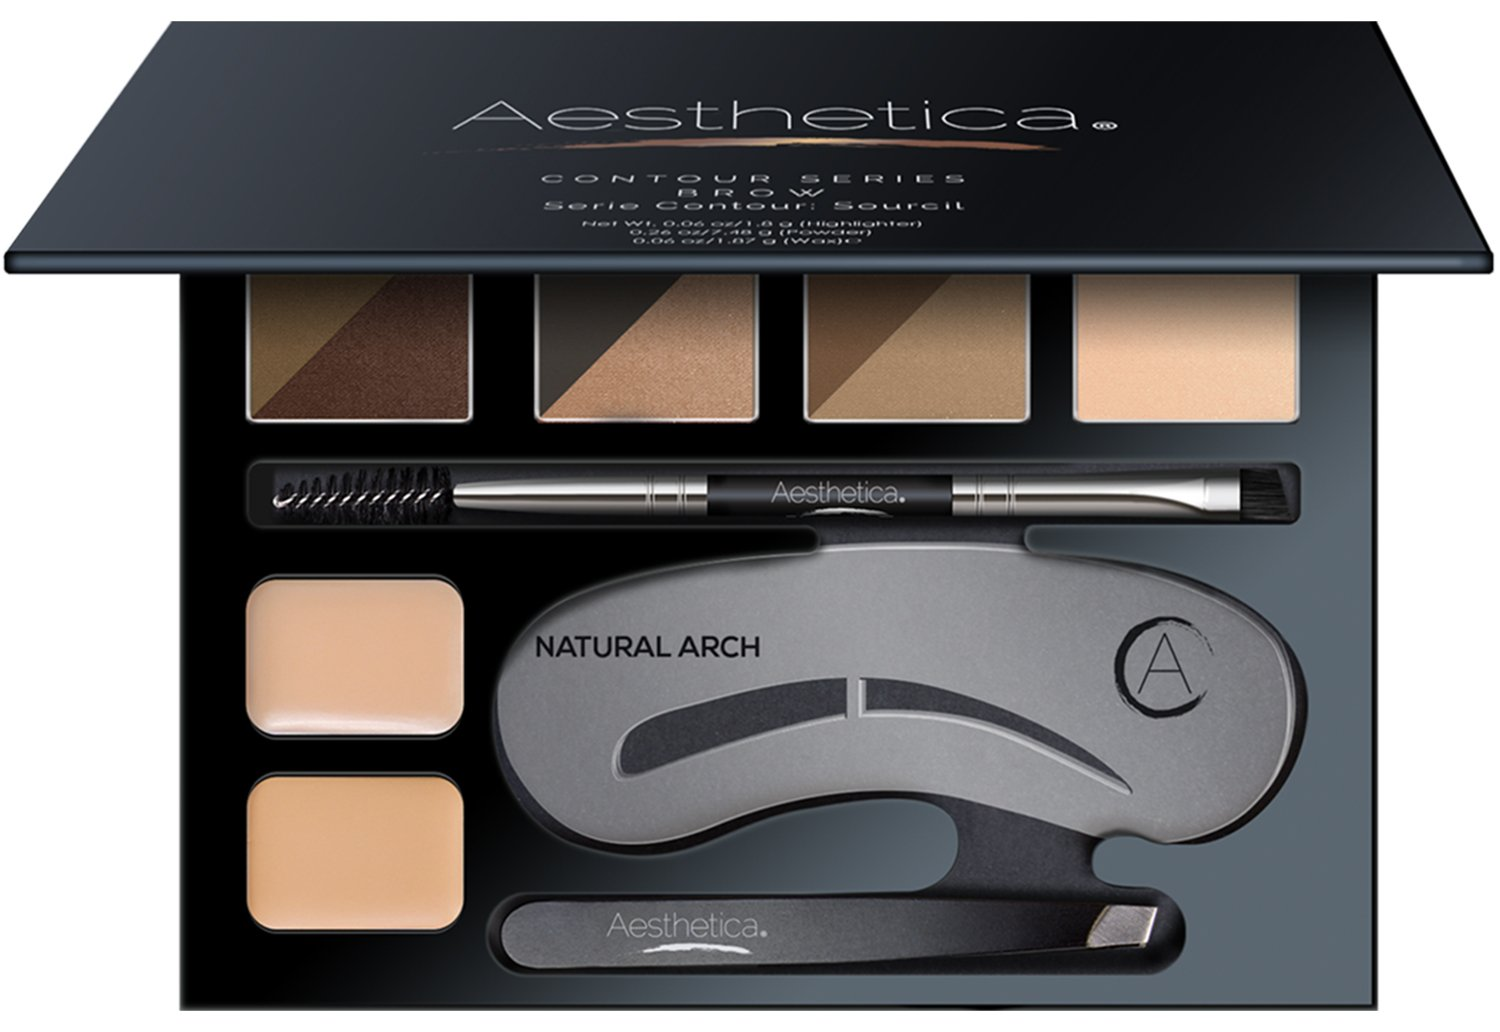 Aesthetica Brow Contour Kit - 16-Piece Eyebrow Makeup ...